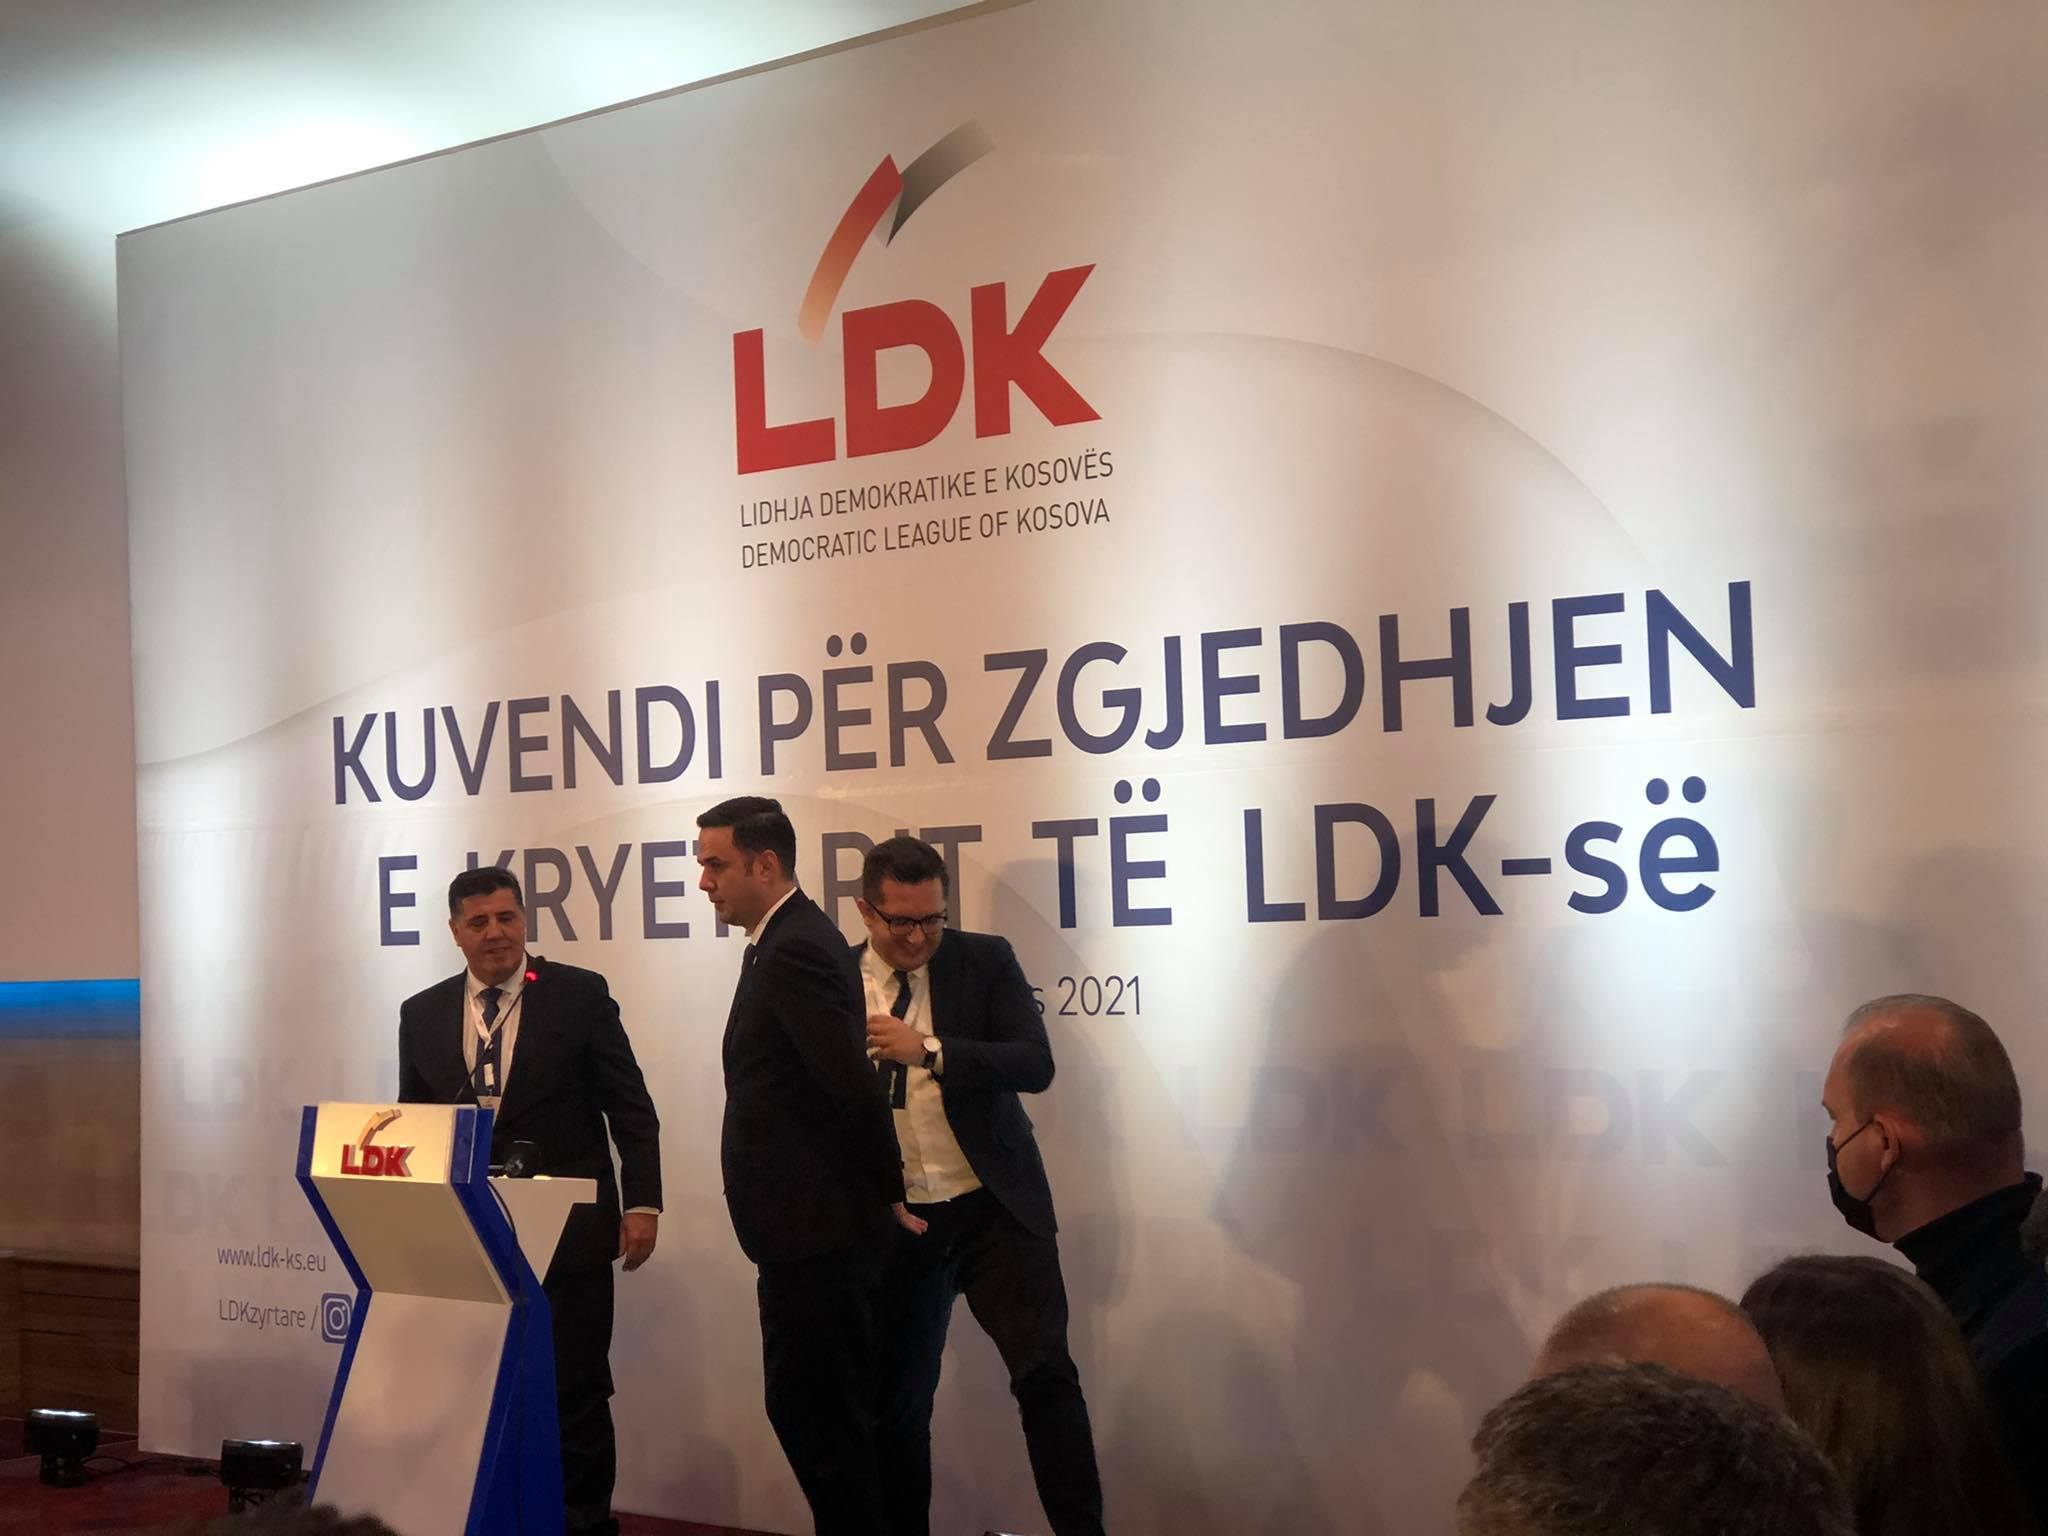 Haziri and Mustafa say they will be united in the LDK